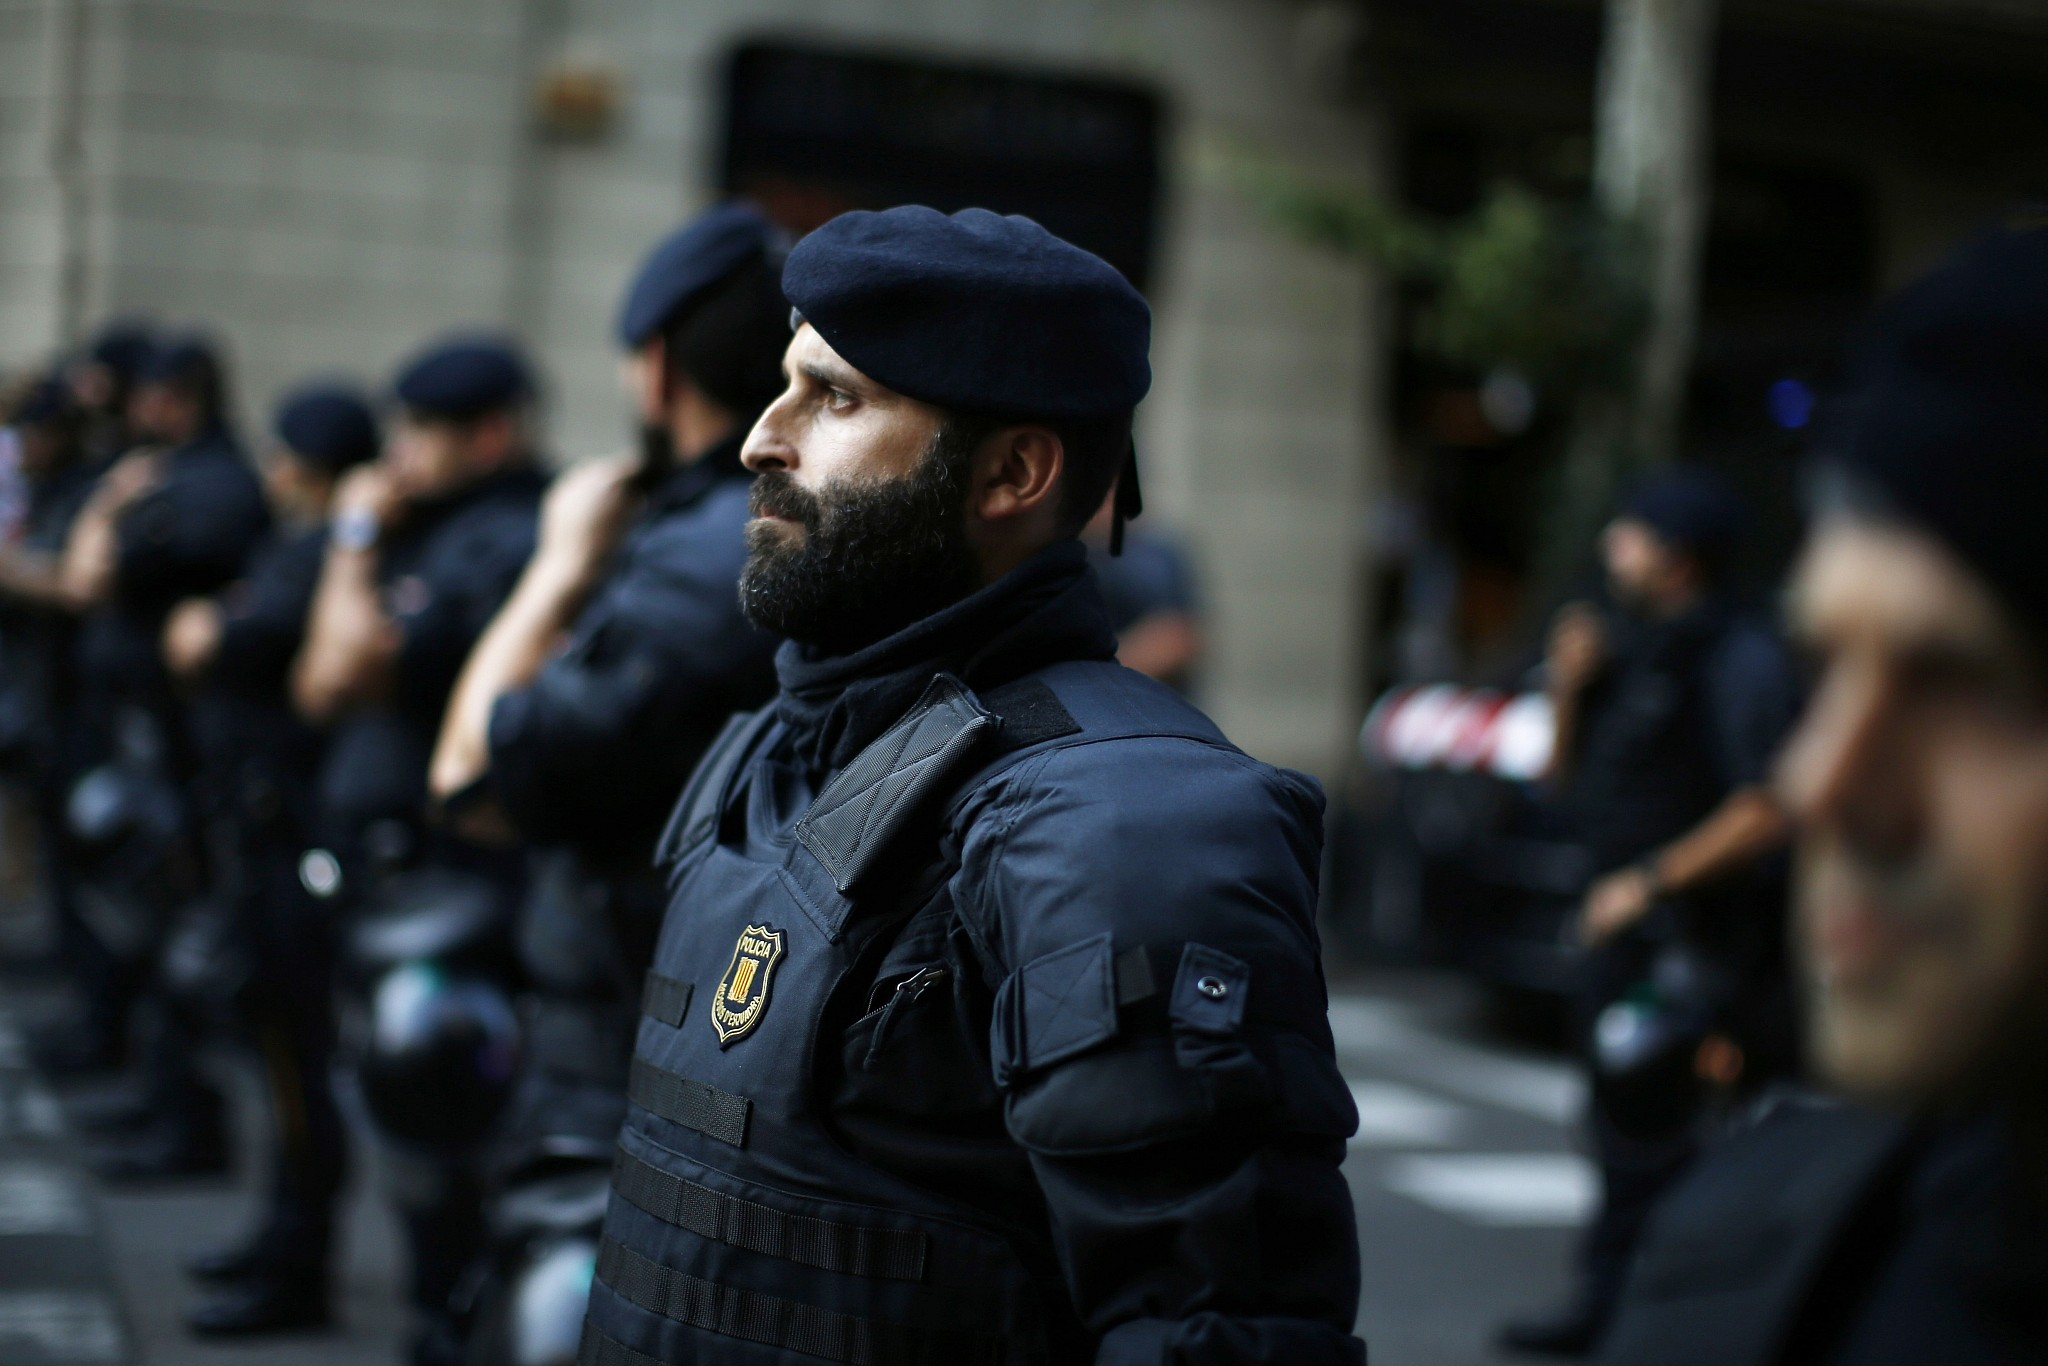 Security increased at police stations in Spain